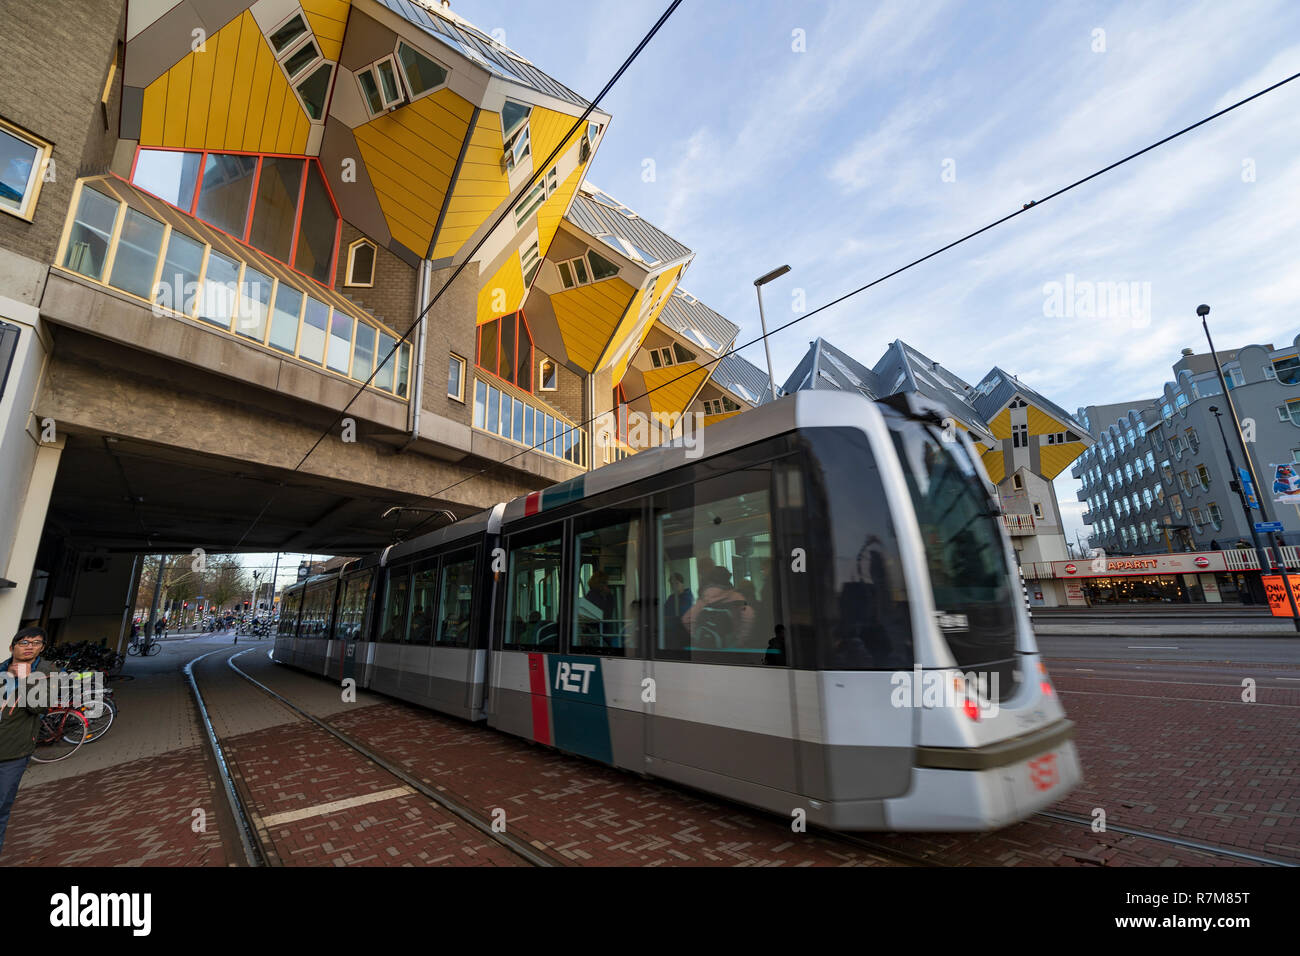 Public tram passes in front of Cube Houses in Rotterdam The Netherlands - Stock Image